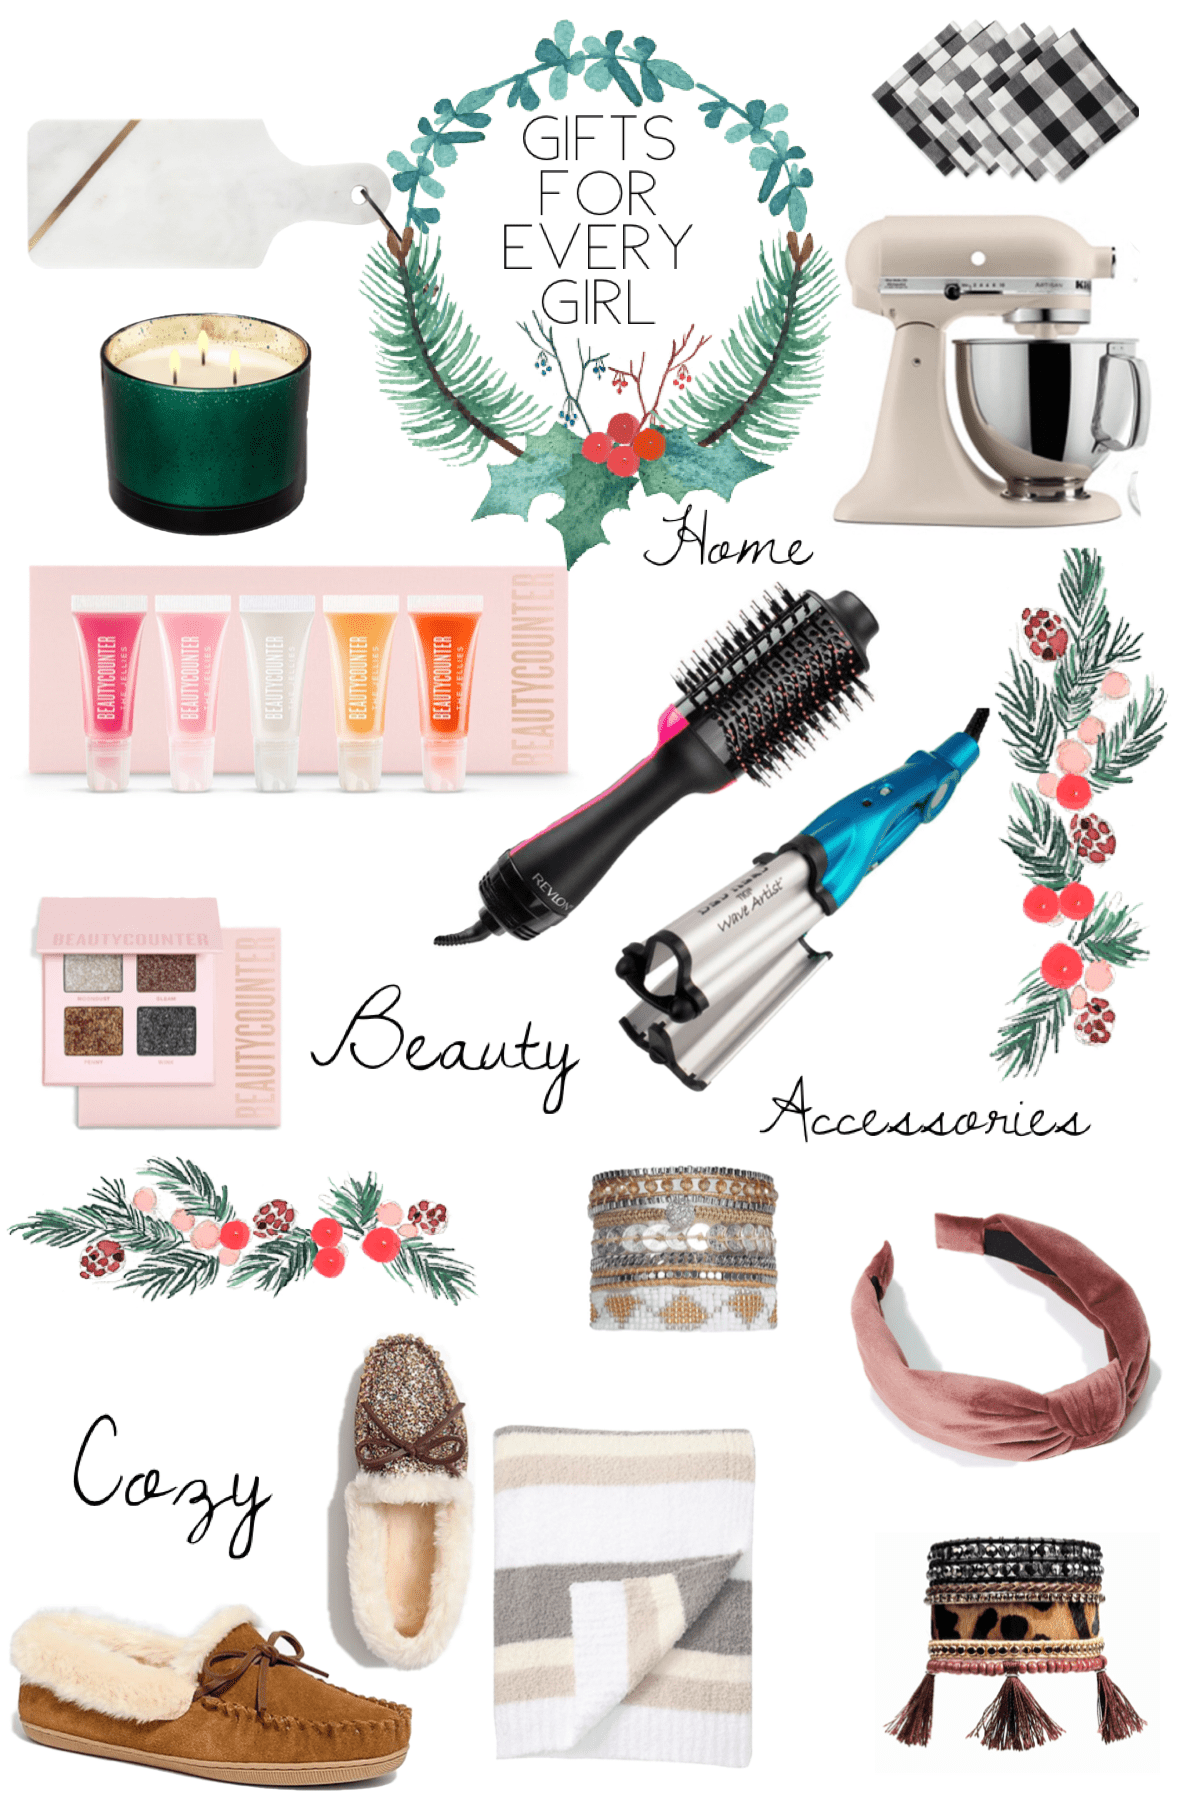 Gift guide for her Gifts for Every Girl